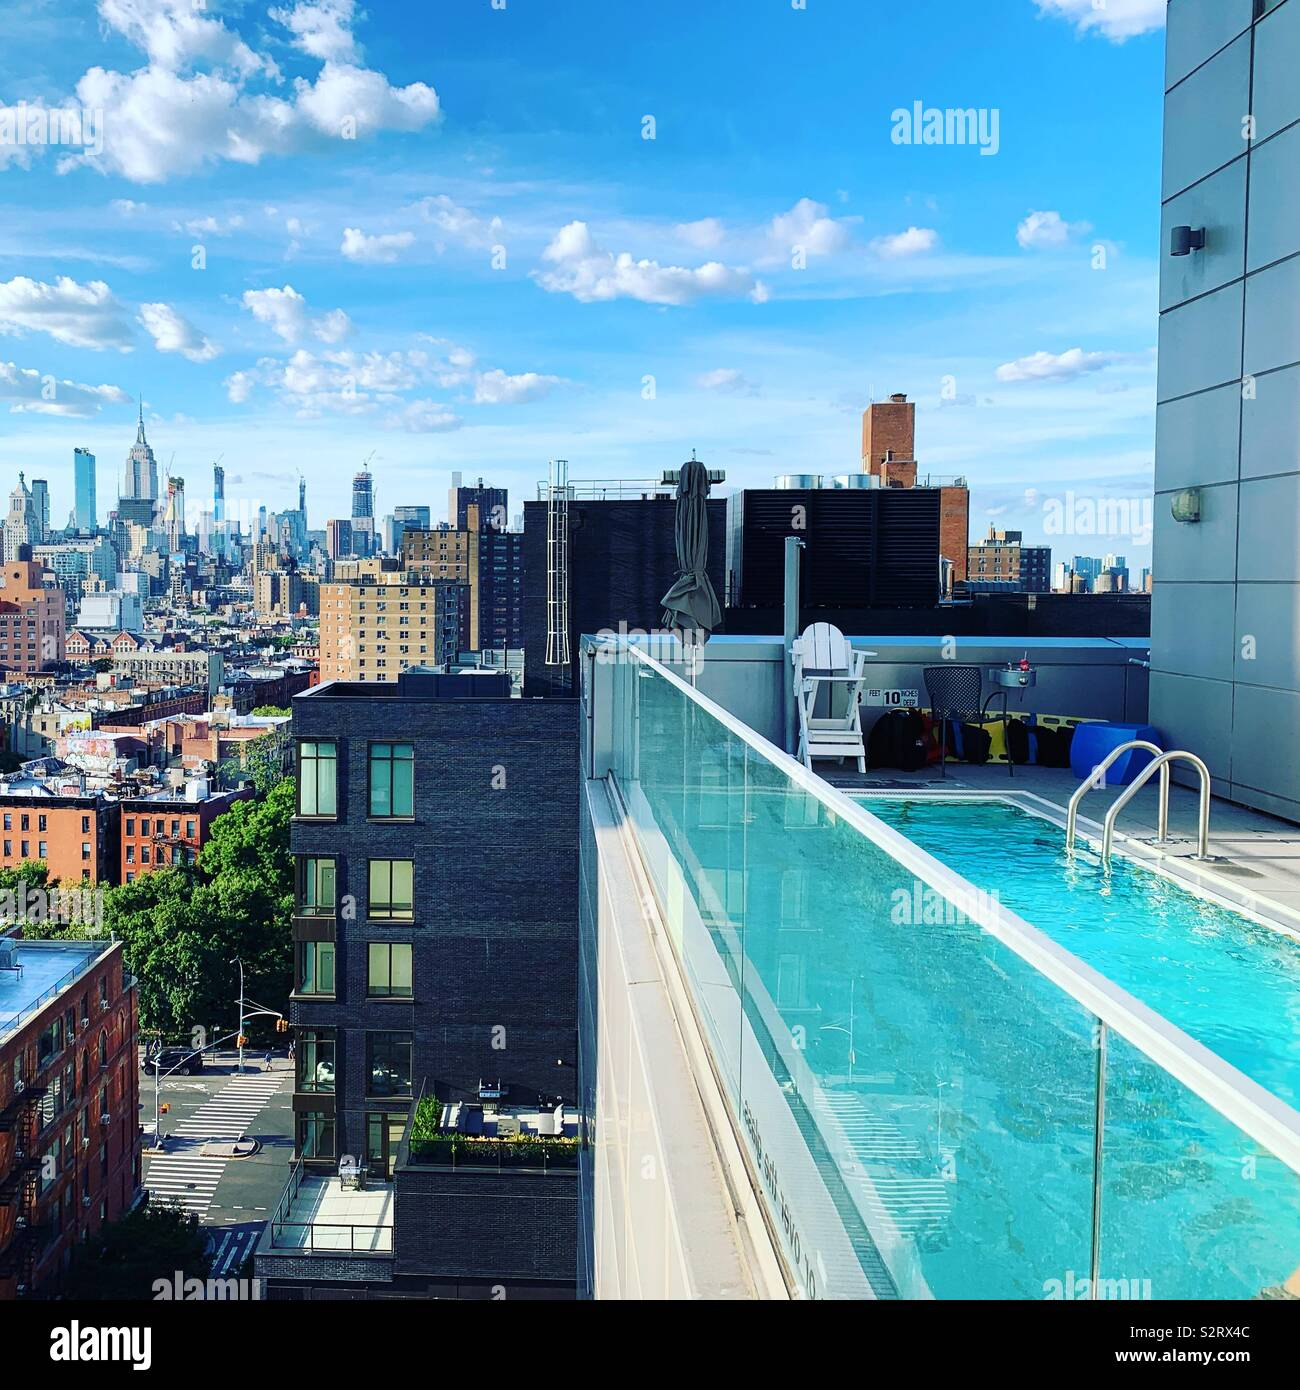 A view from beside the pool at the Hotel Indigo Lower East Side, New York City - Stock Image